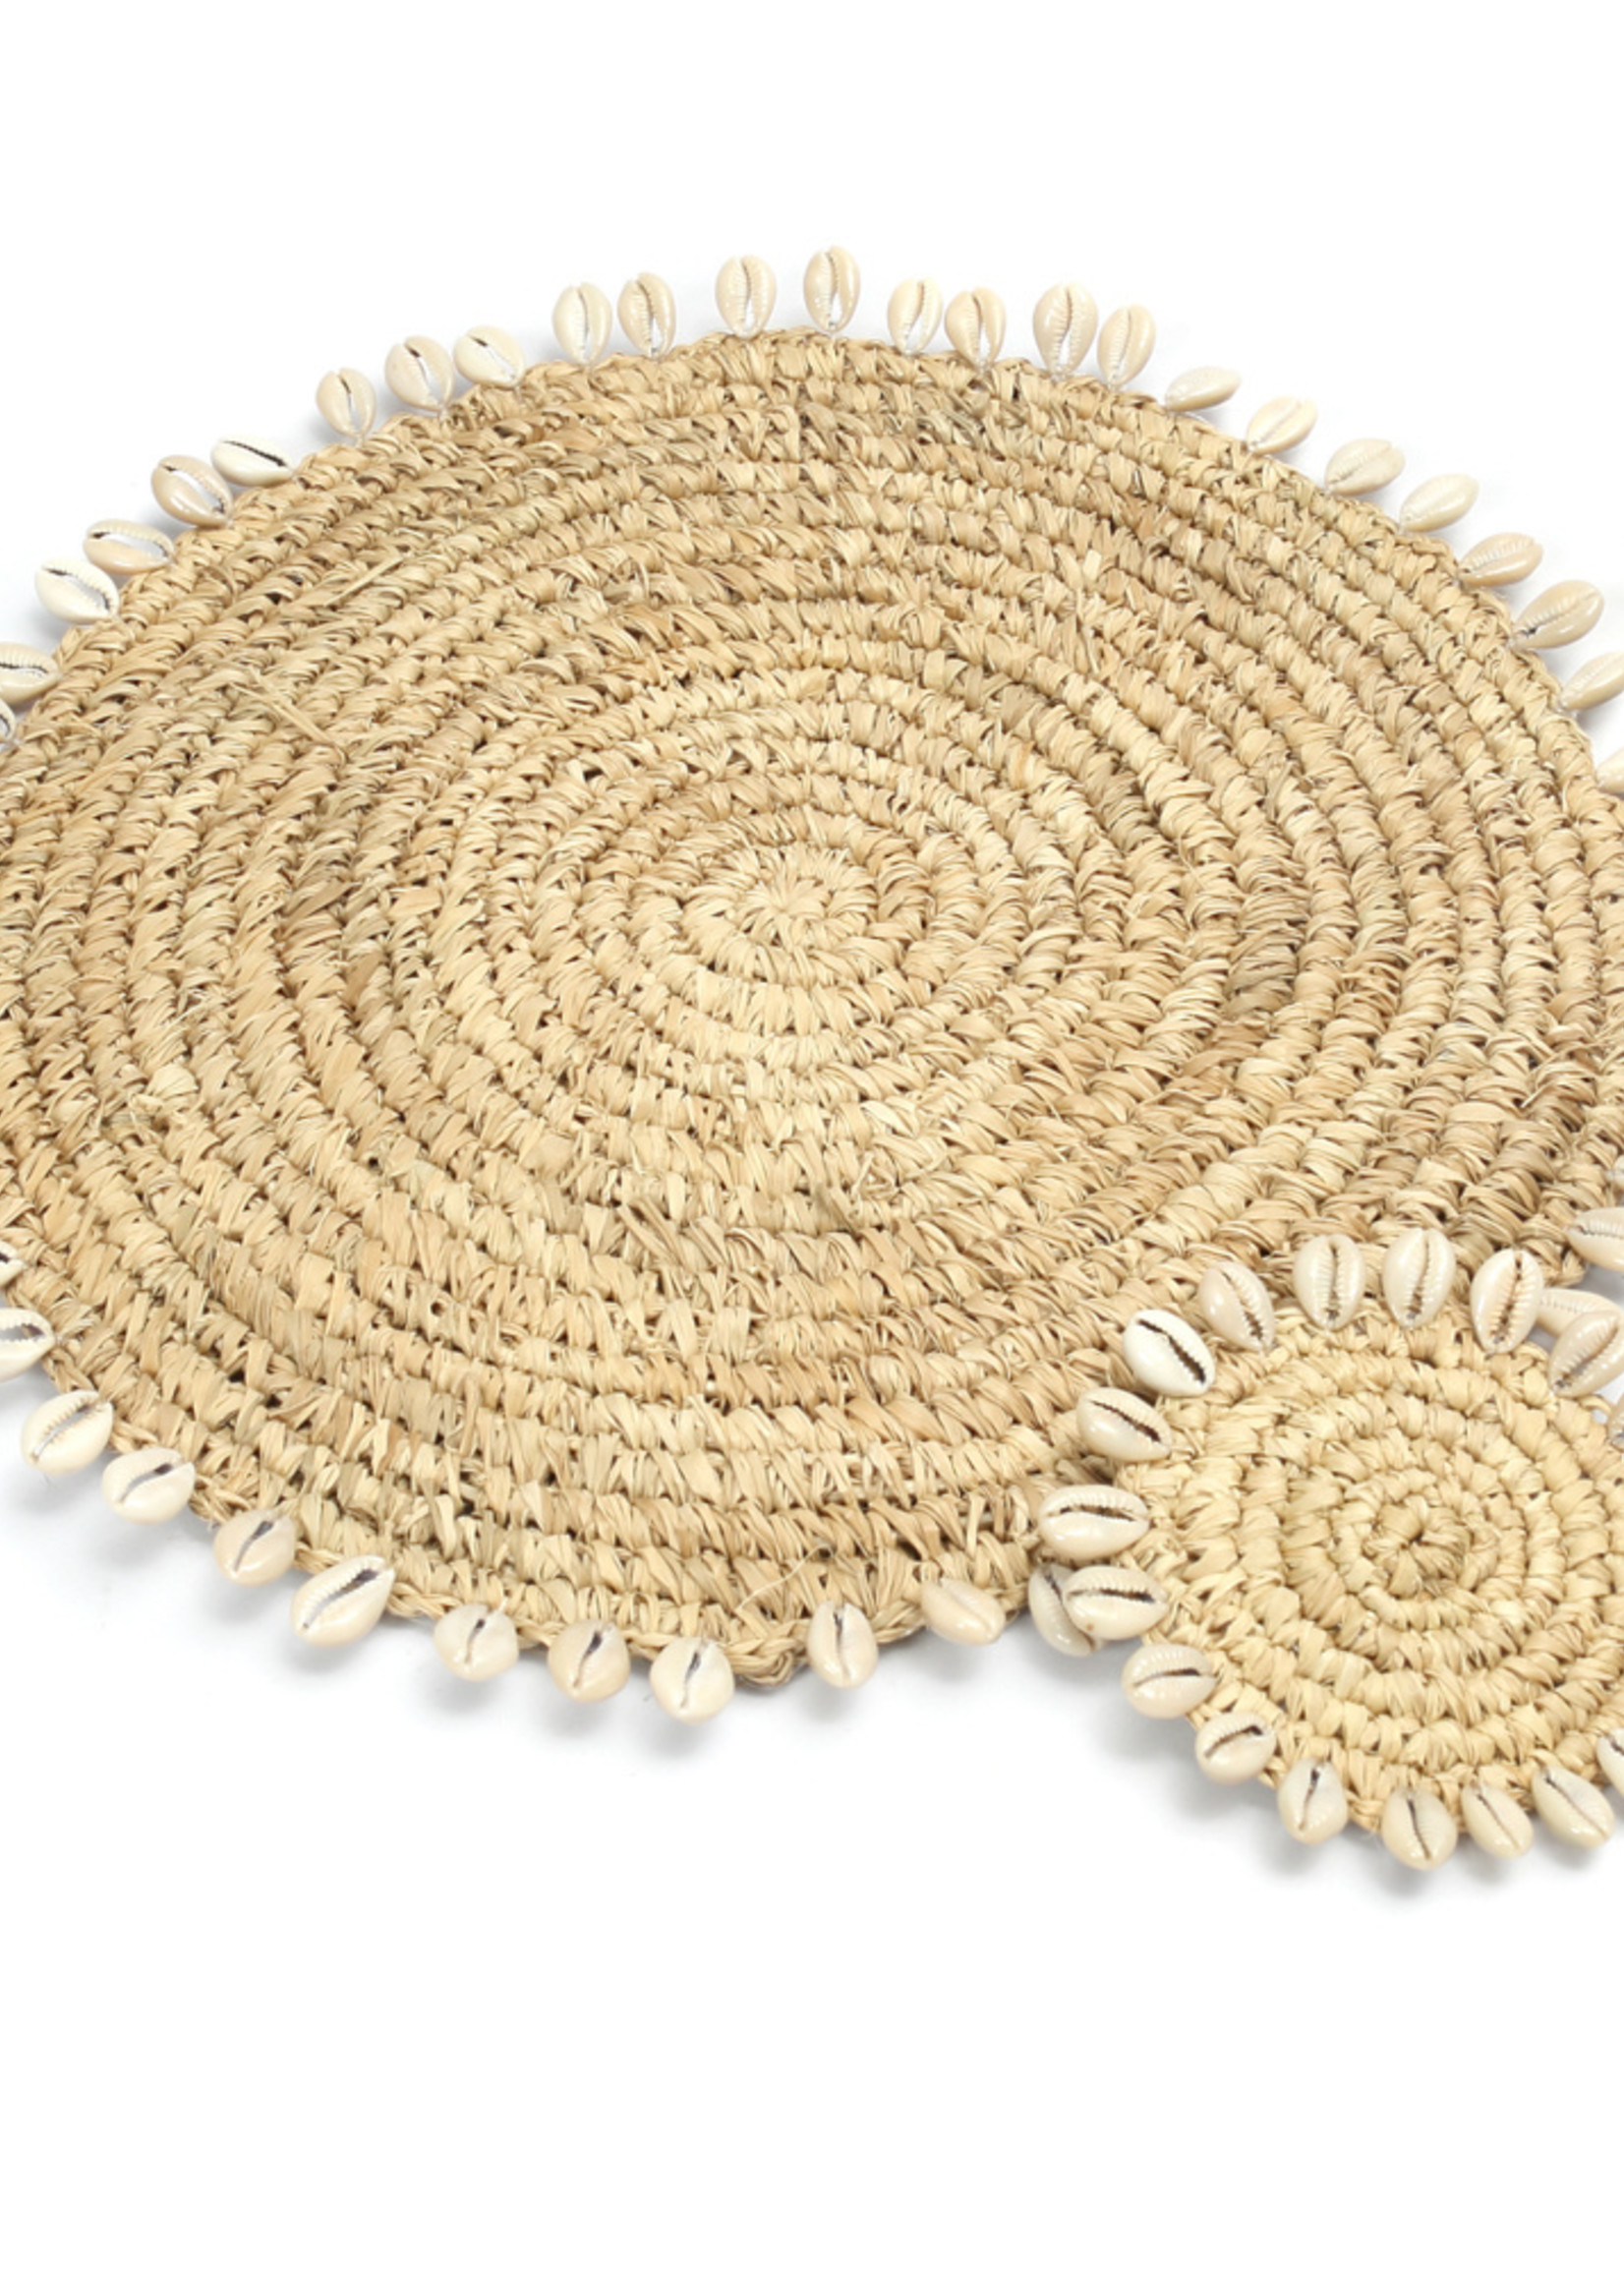 The Raffia Shell Placemat - Natural